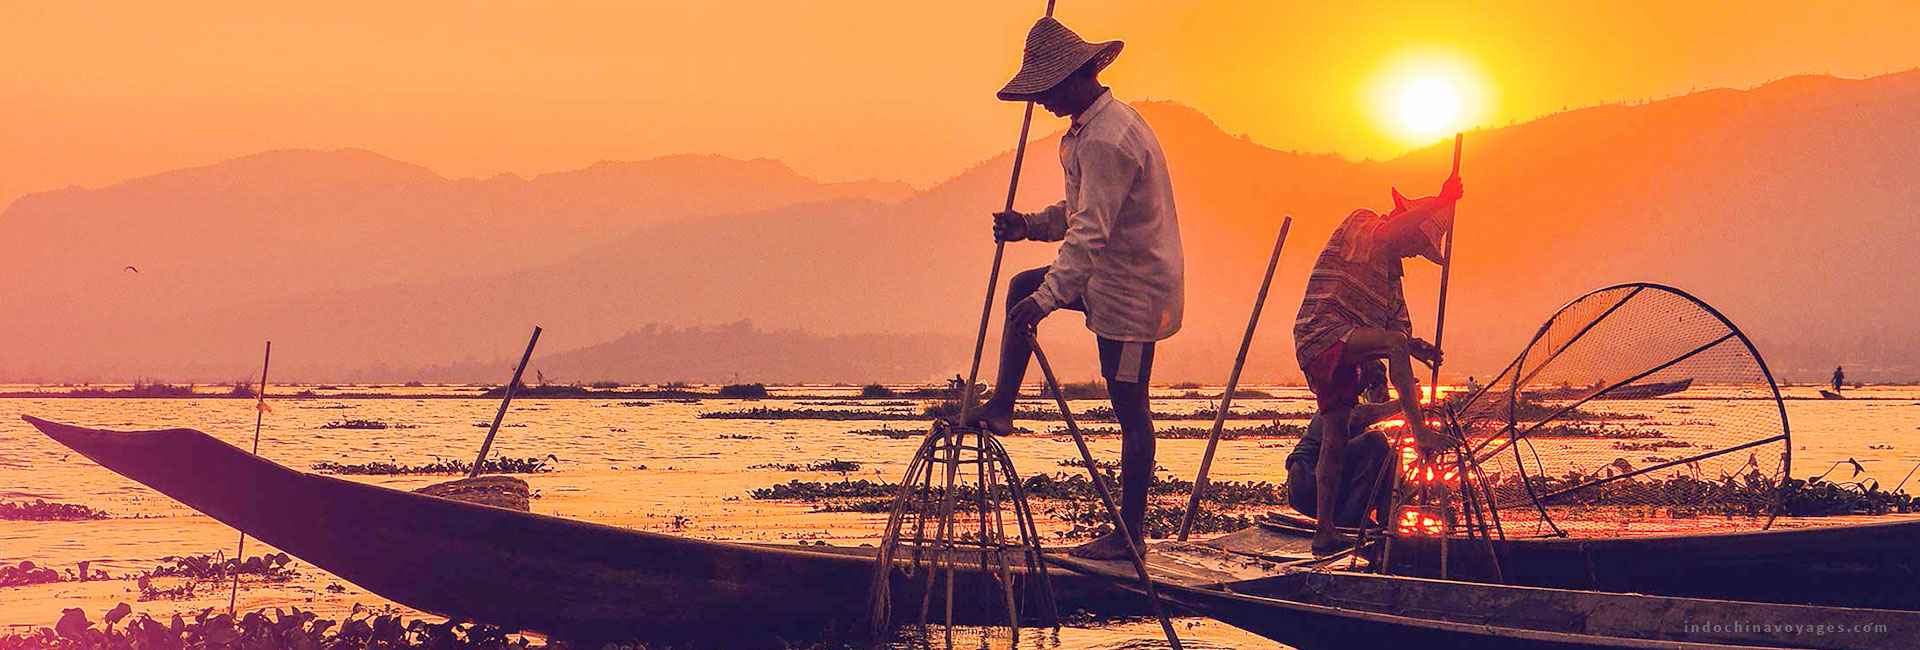 Inle Lake Myanmar Tours-Country highlight